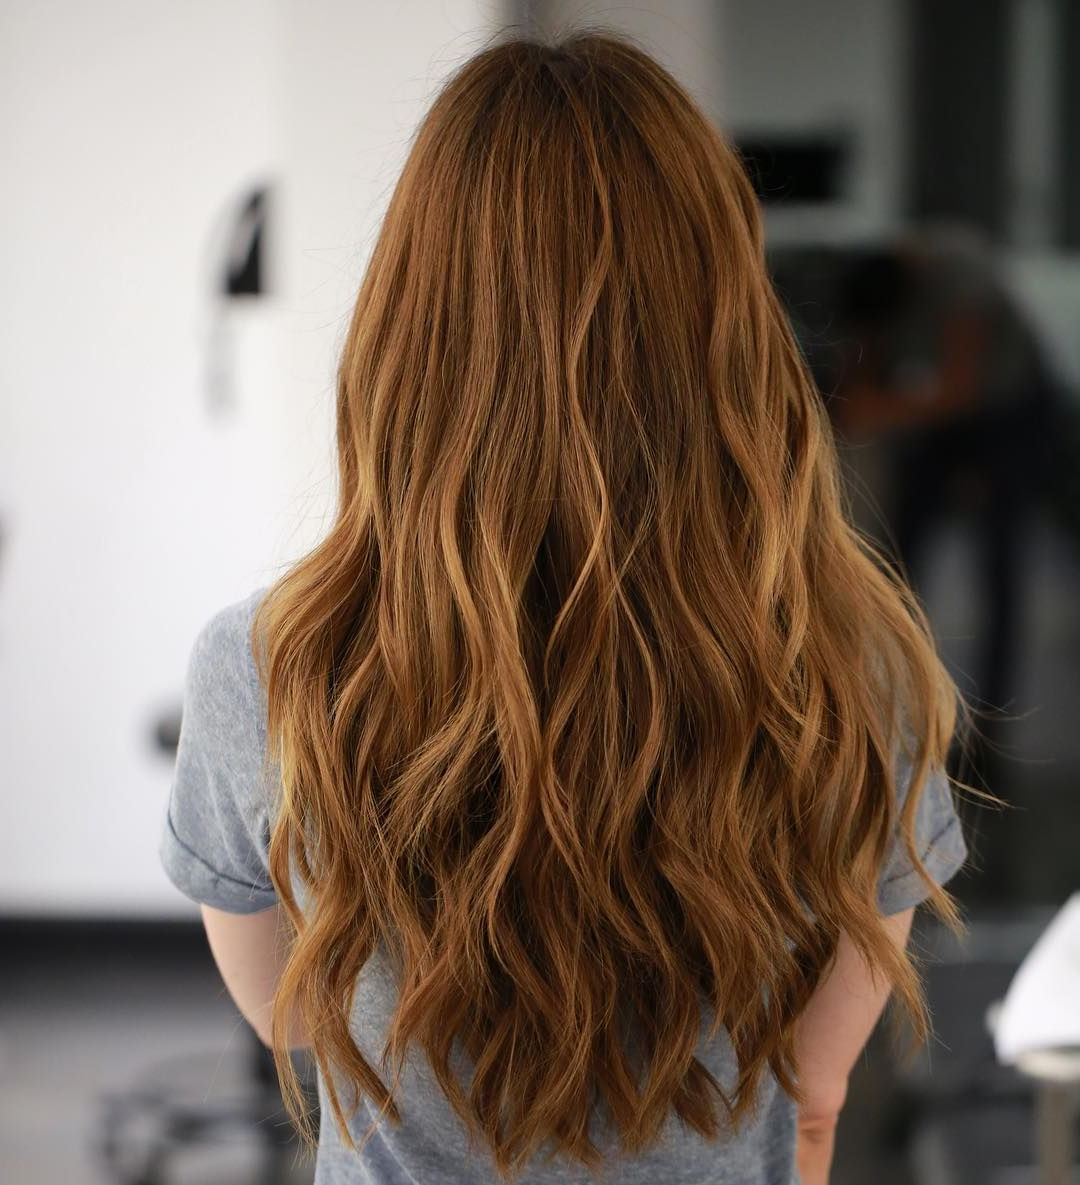 Wavy Long Ginger Red Hair With Short Layering (Gallery 16 of 20)